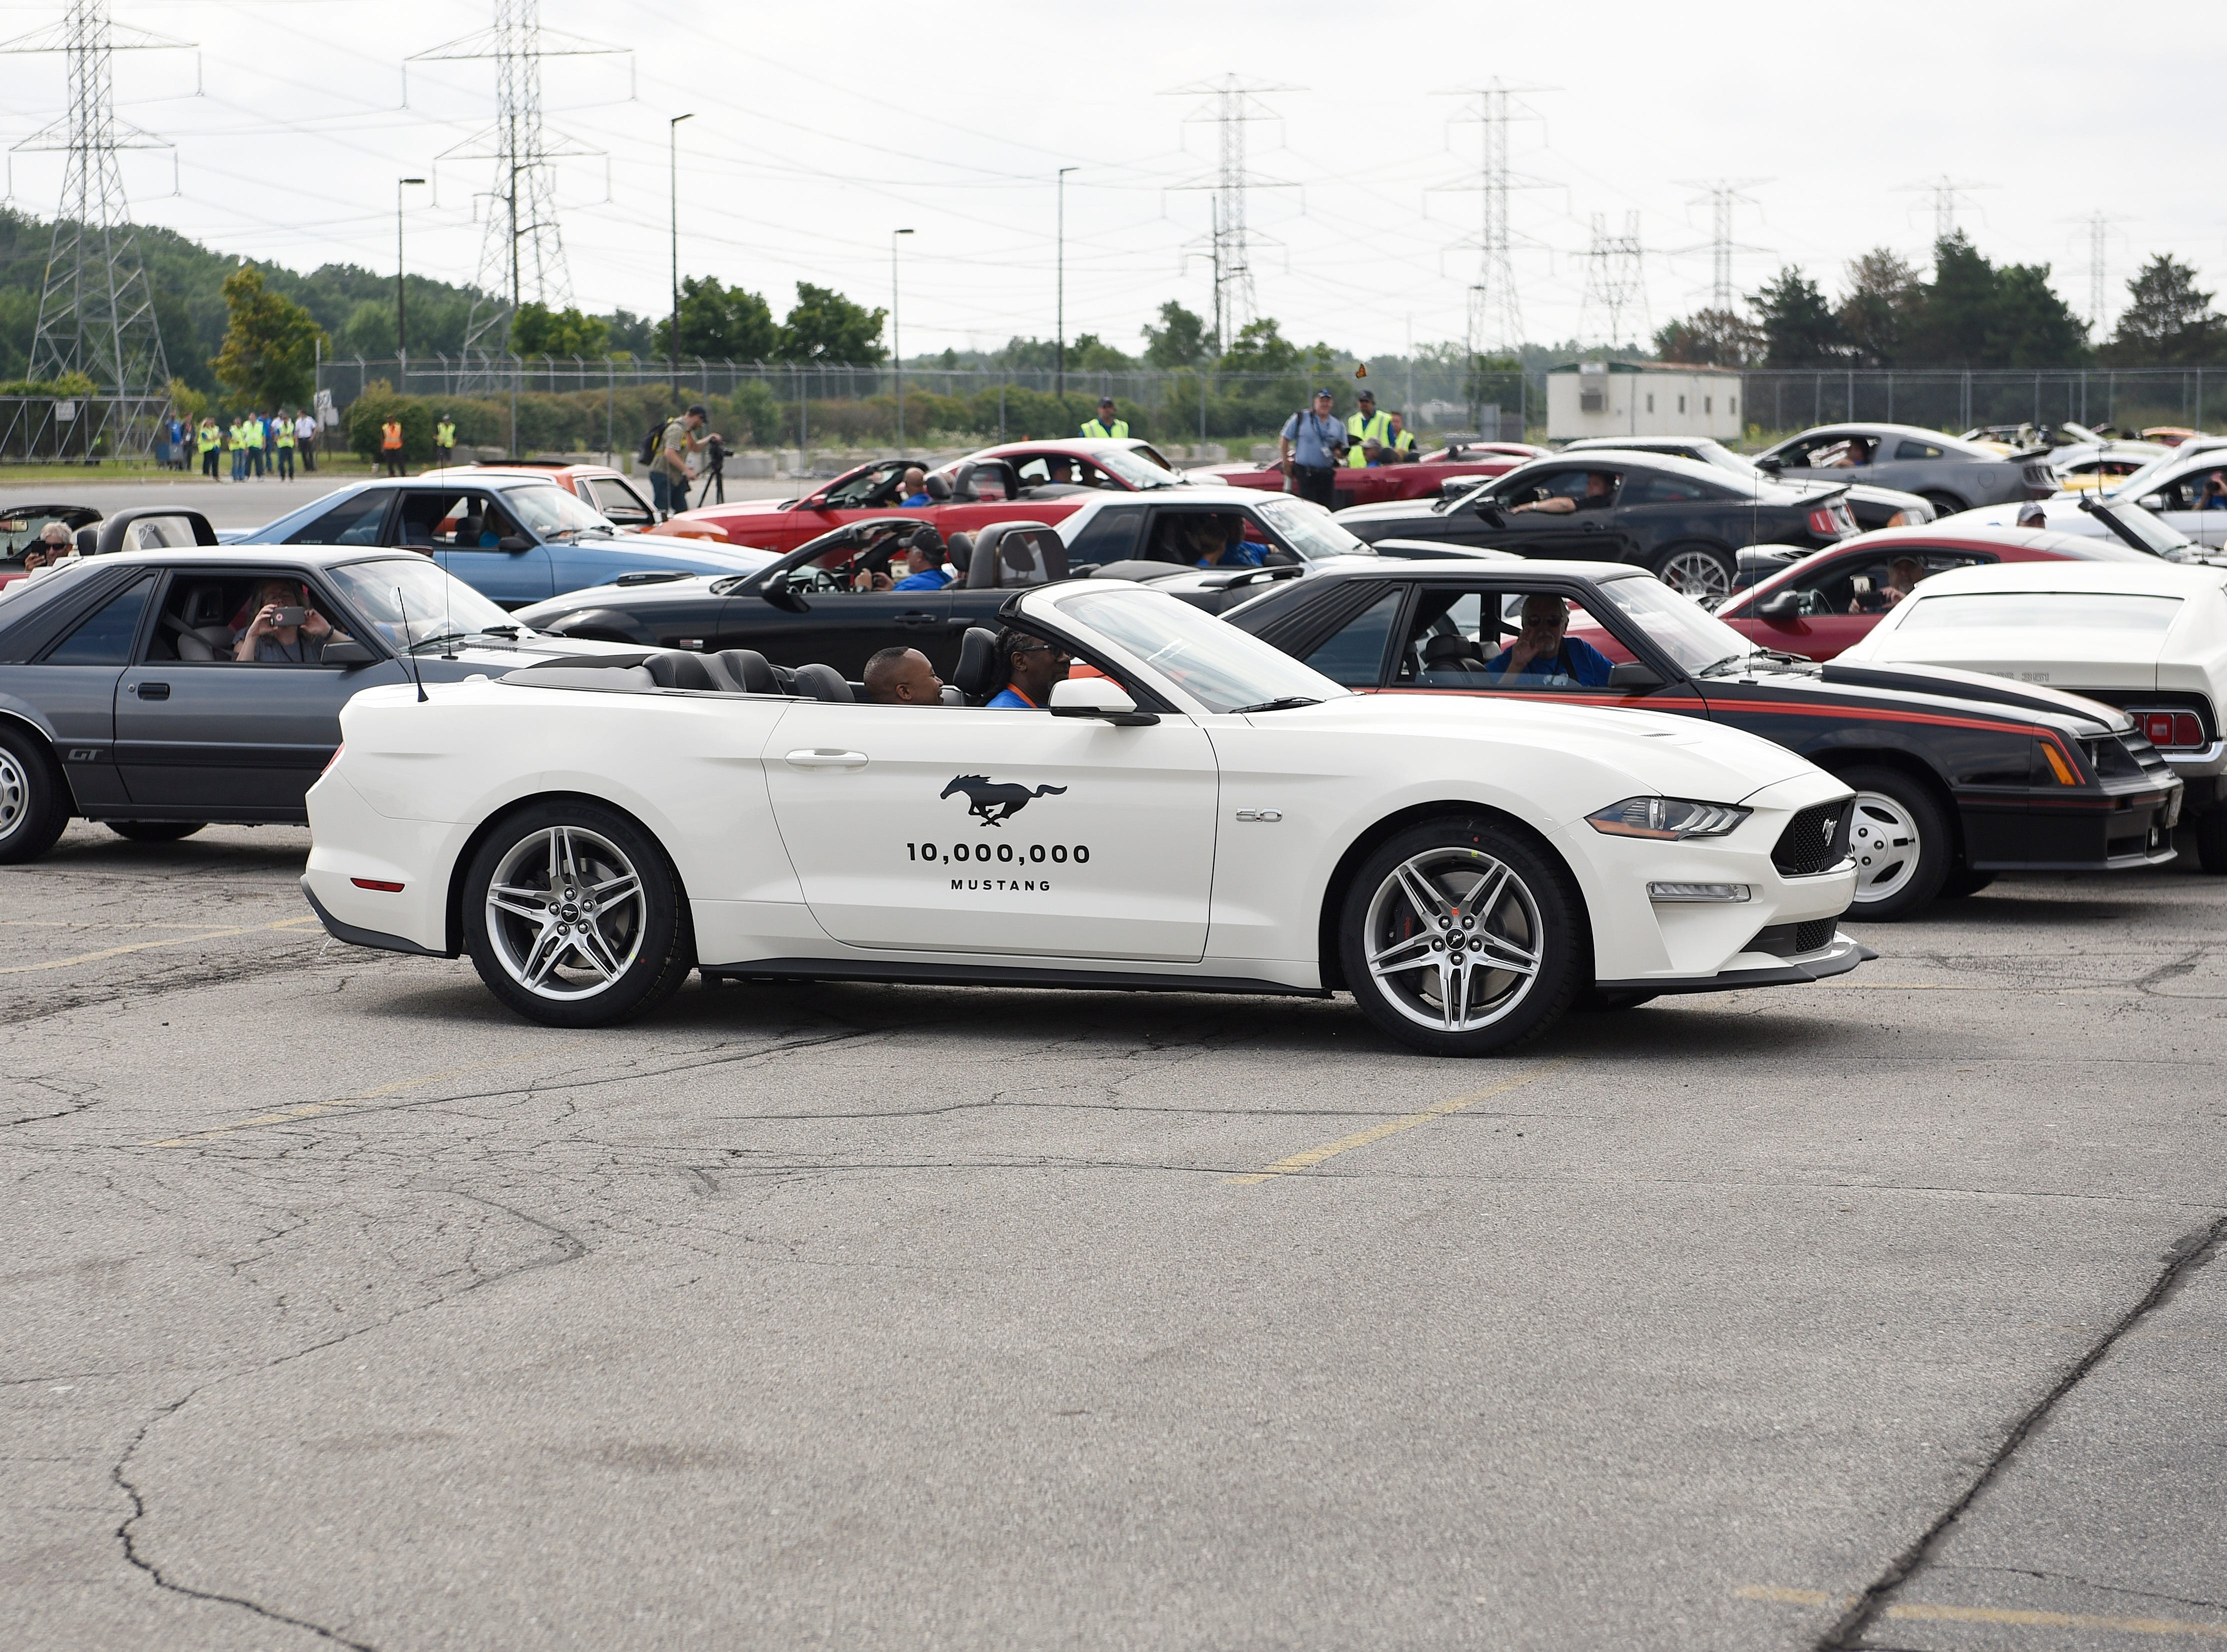 The 10 millionth Mustang enters the gate at the Flat Rock plant to join the other Mustangs to make a formation spelling out 10,000,000.